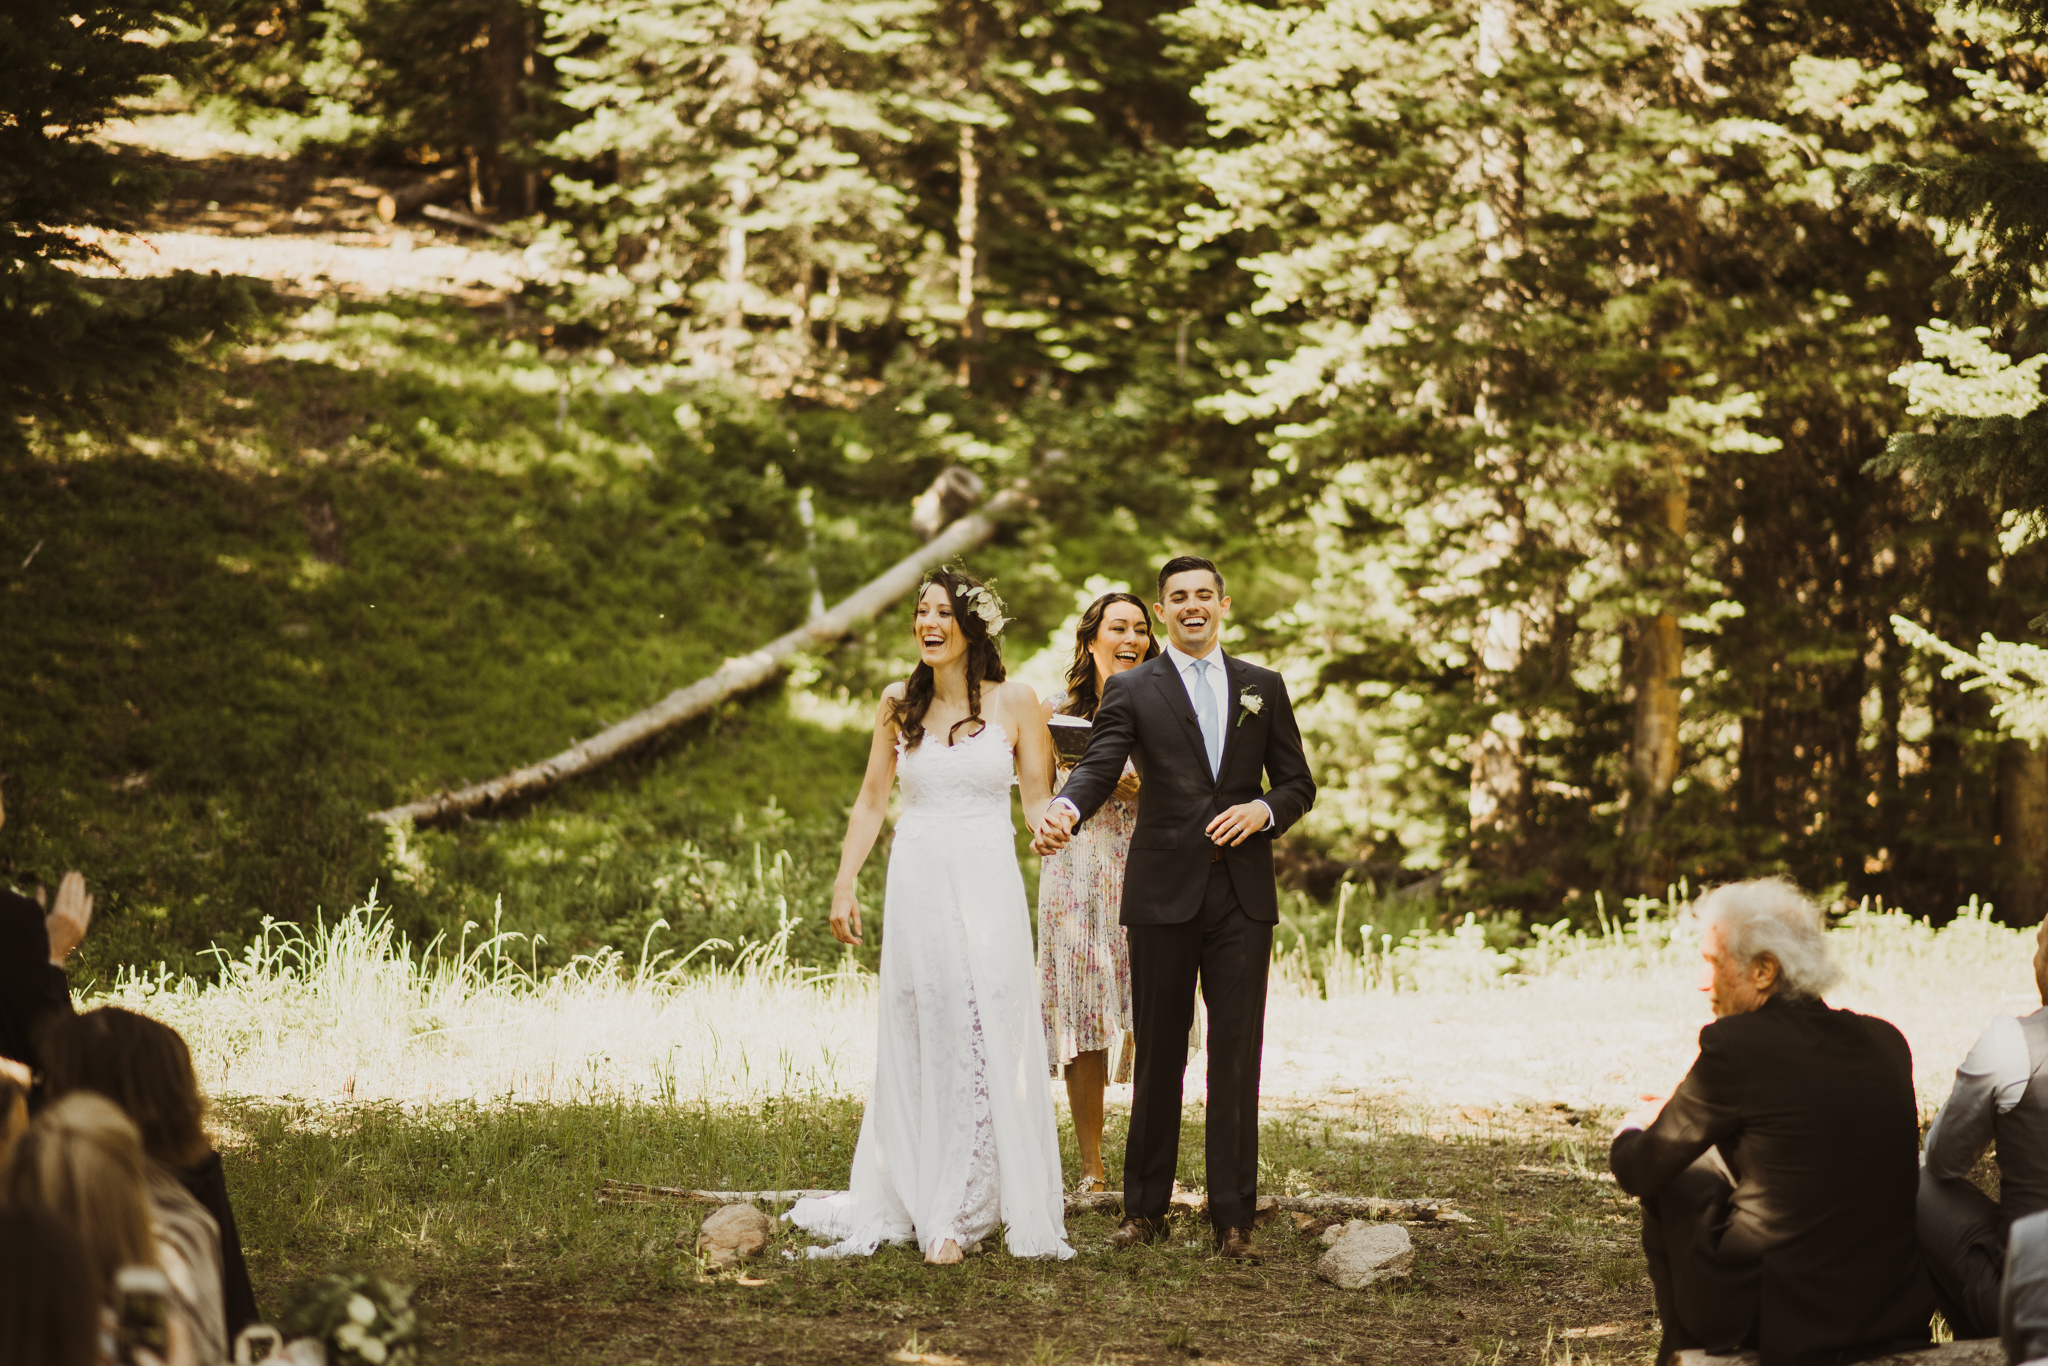 ©Isaiah + Taylor Photography - Estes National Park Adventure Elopement, Colorado Rockies-34.jpg